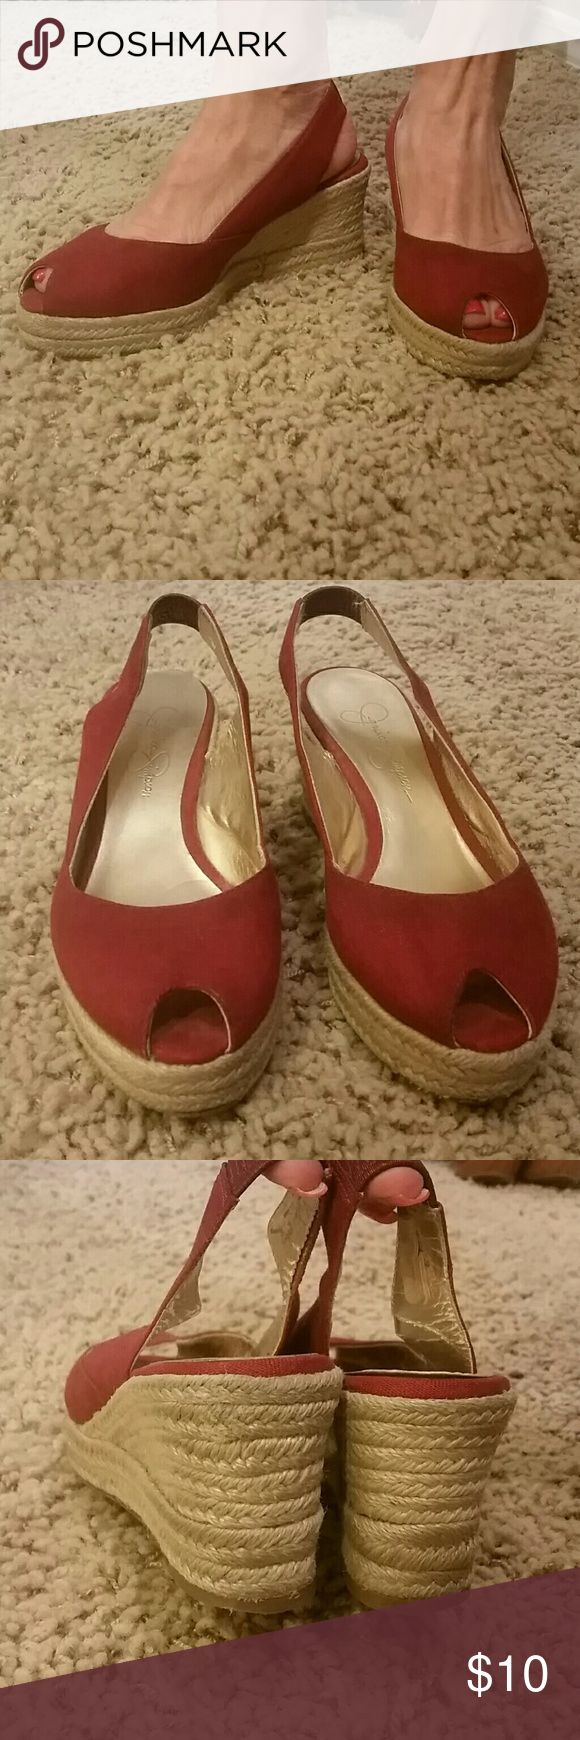 Jessica Simpson red espadrille low wedge Lightly worn but still in good shape.  Super comfortable. 3 inch heel. 1 inch platform. Jessica Simpson Shoes Espadrilles